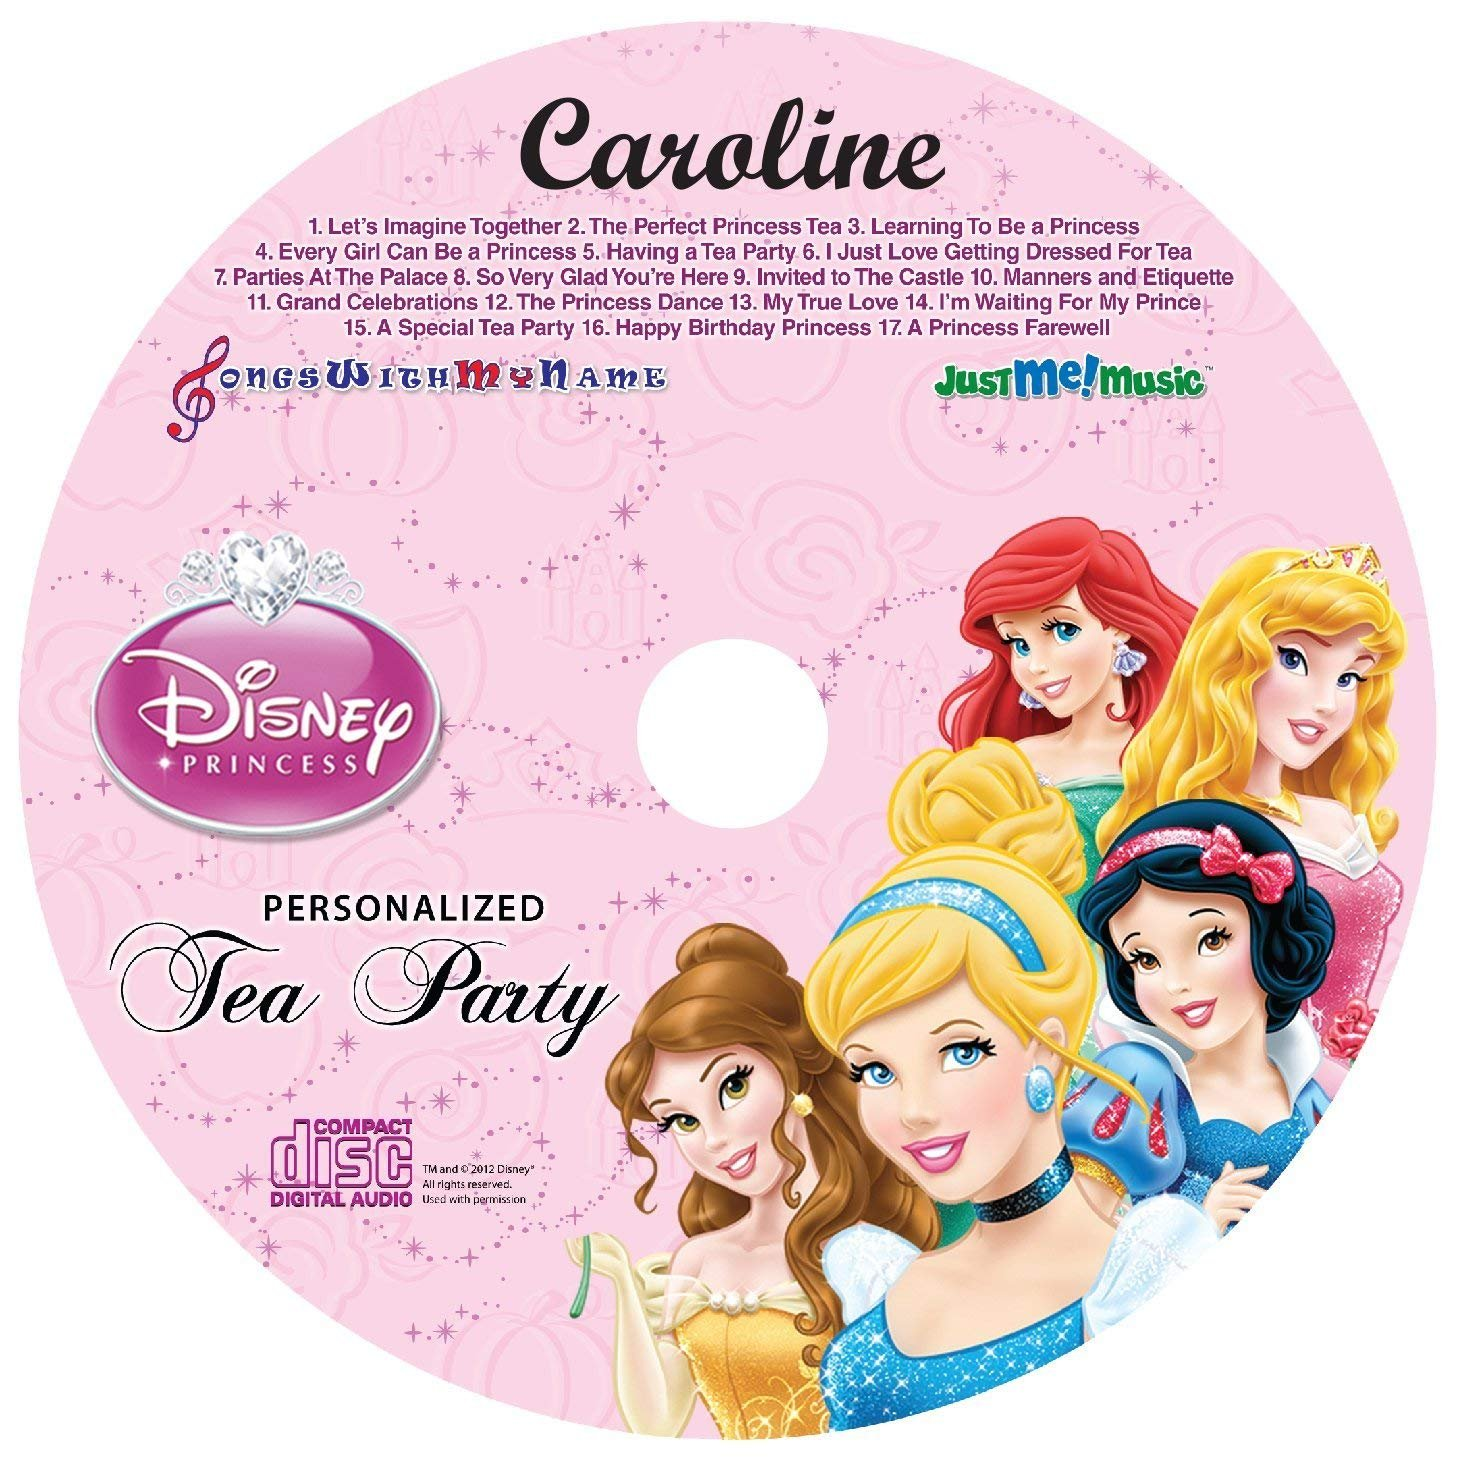 Gombita Enterprises Children Name Personalized CD or MP3 Sing Along with Disney Princess Tea Party Customize Now (CD Disk & Digital MP3 Code)